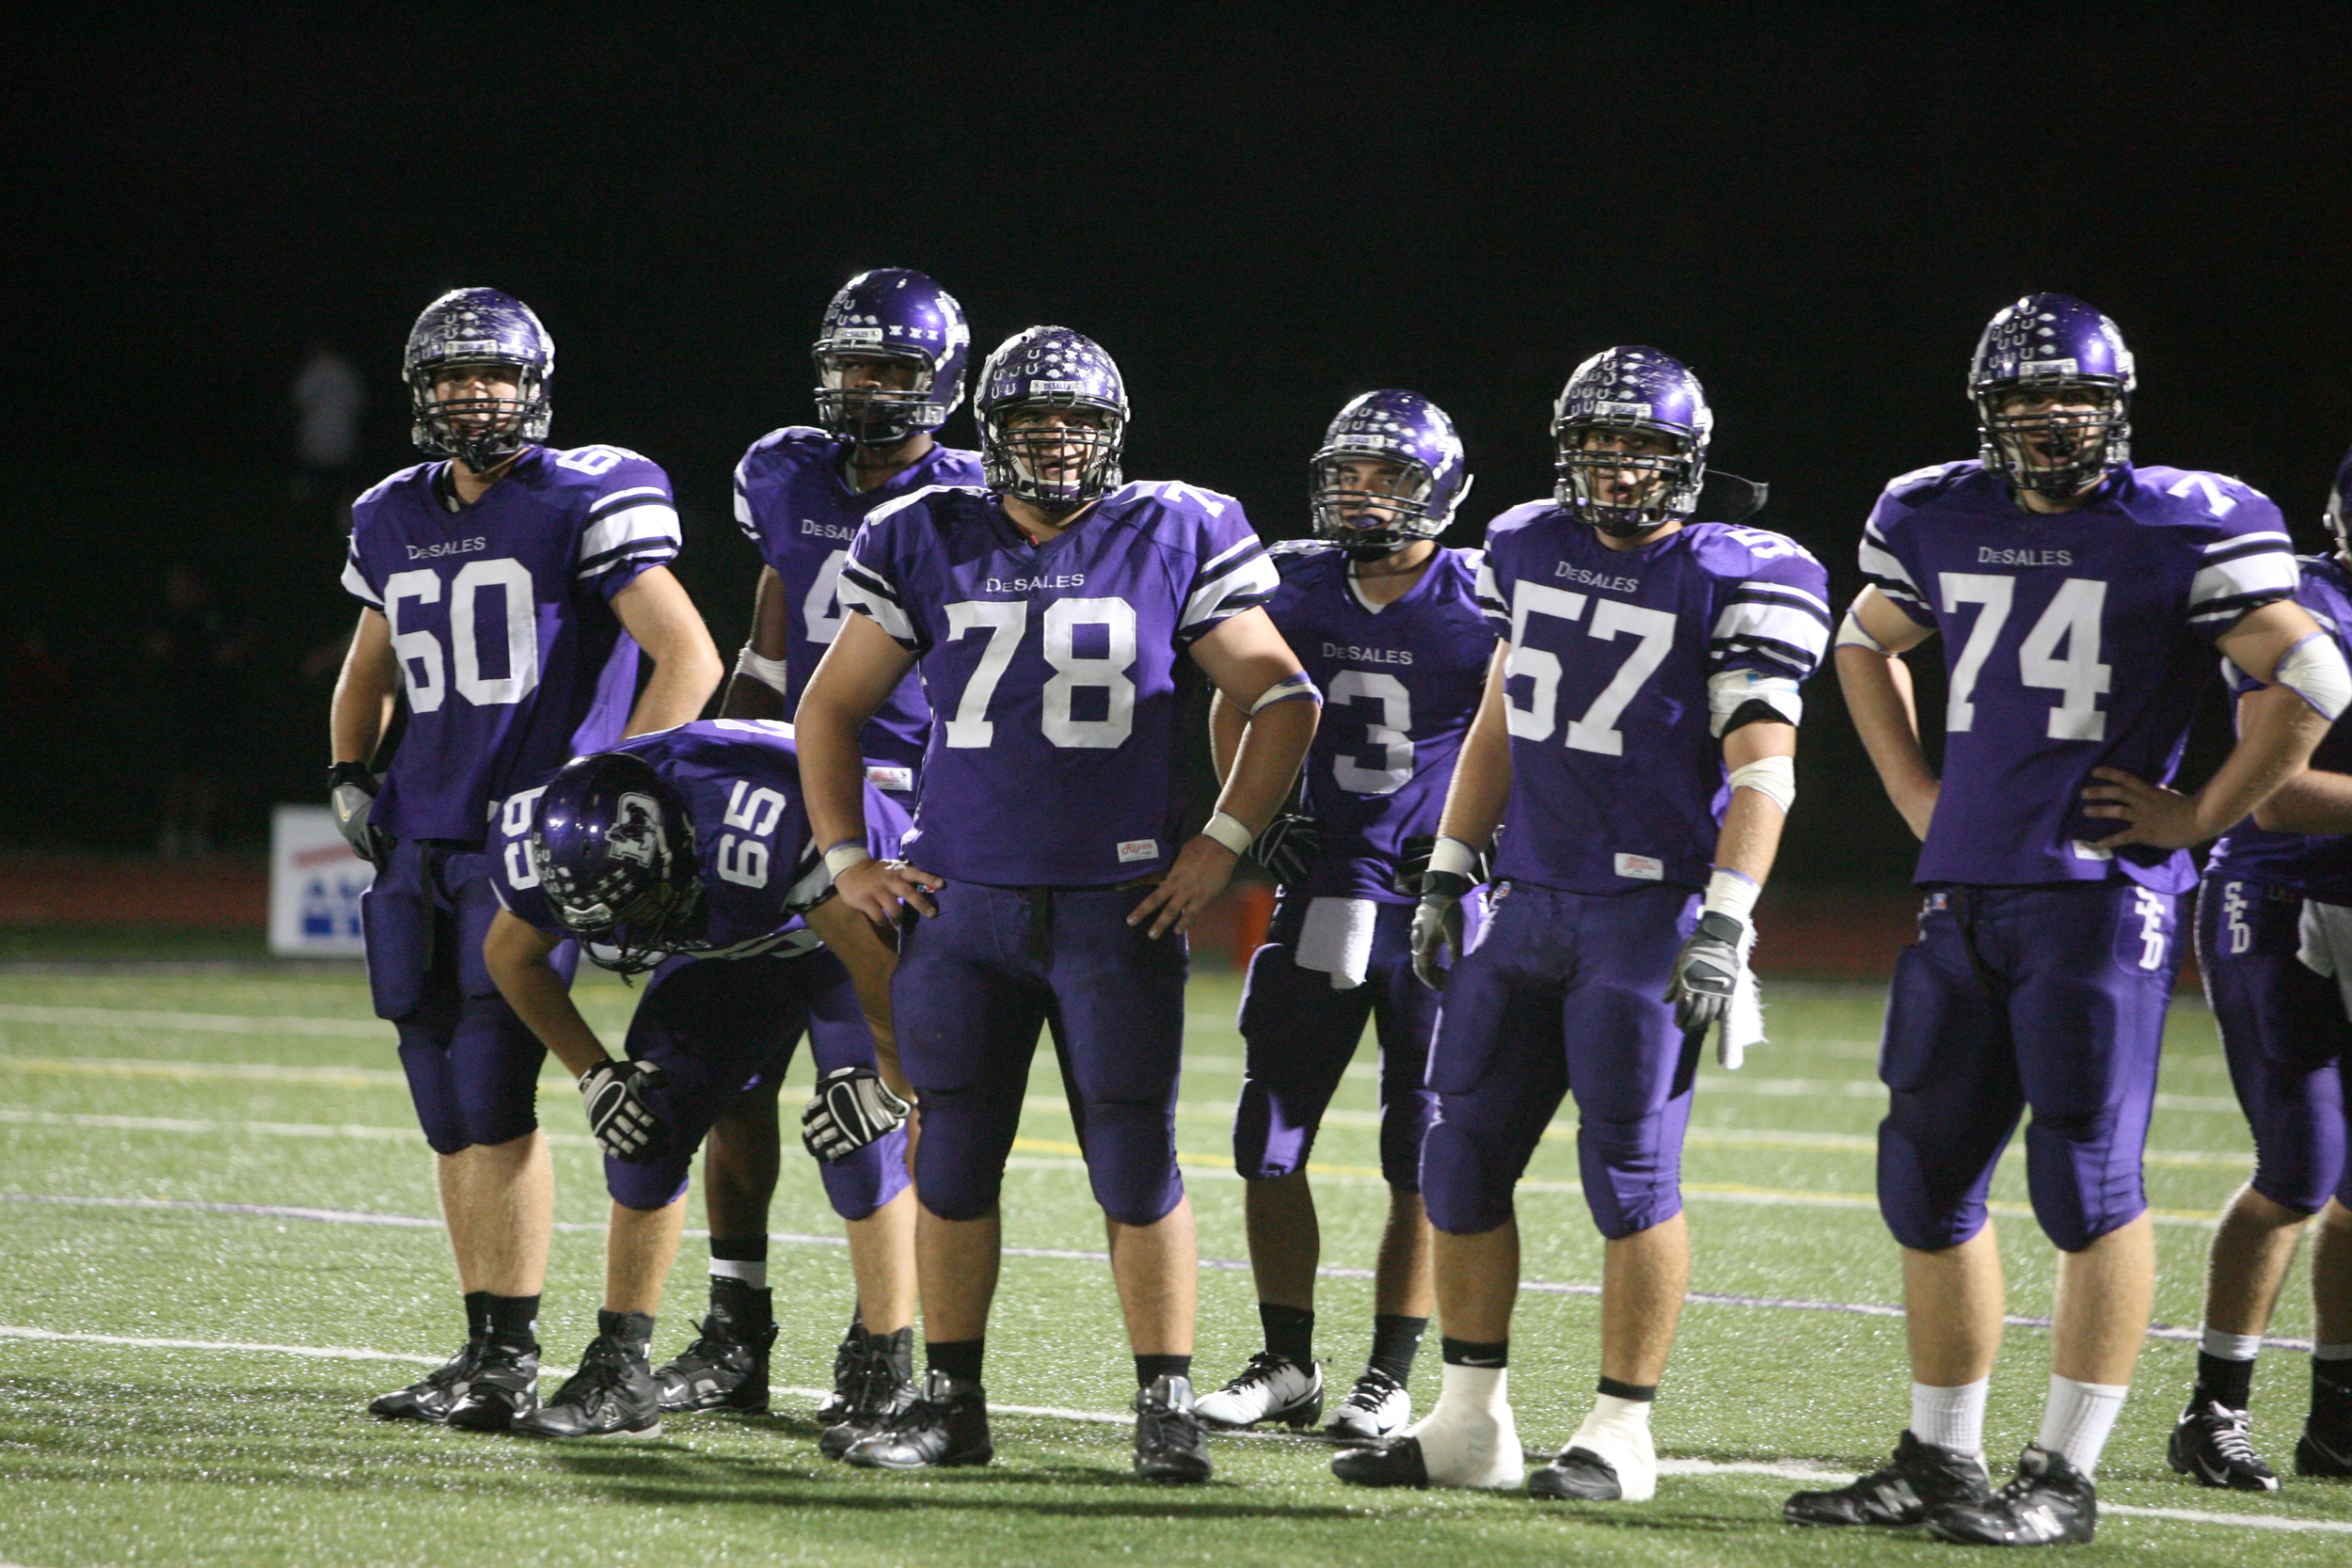 The offensive line (pictured from L to R) of Alex Vance (60), Josh Richmond (65), Jake Smith (78), Greg Dolcich (57) and Matt Ray (74)helped pave the way for a big 2nd half by Josh Kusan (photo credit - Barb Dougherty)